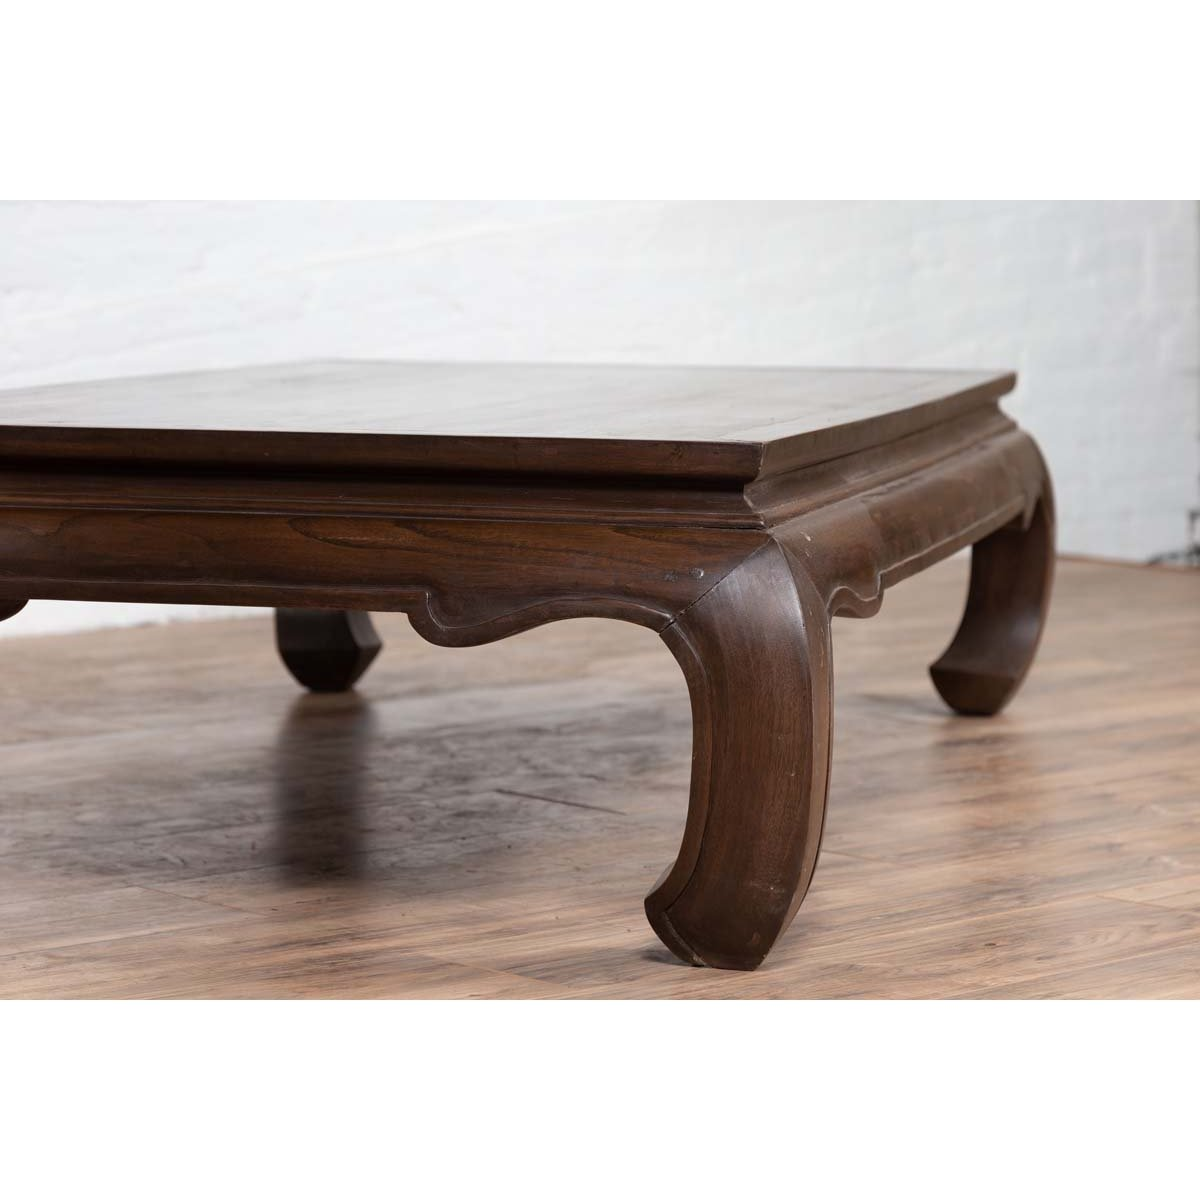 Vintage Thai Opium Bed Style Waisted Coffee Table with Dark Patina and Chow Legs